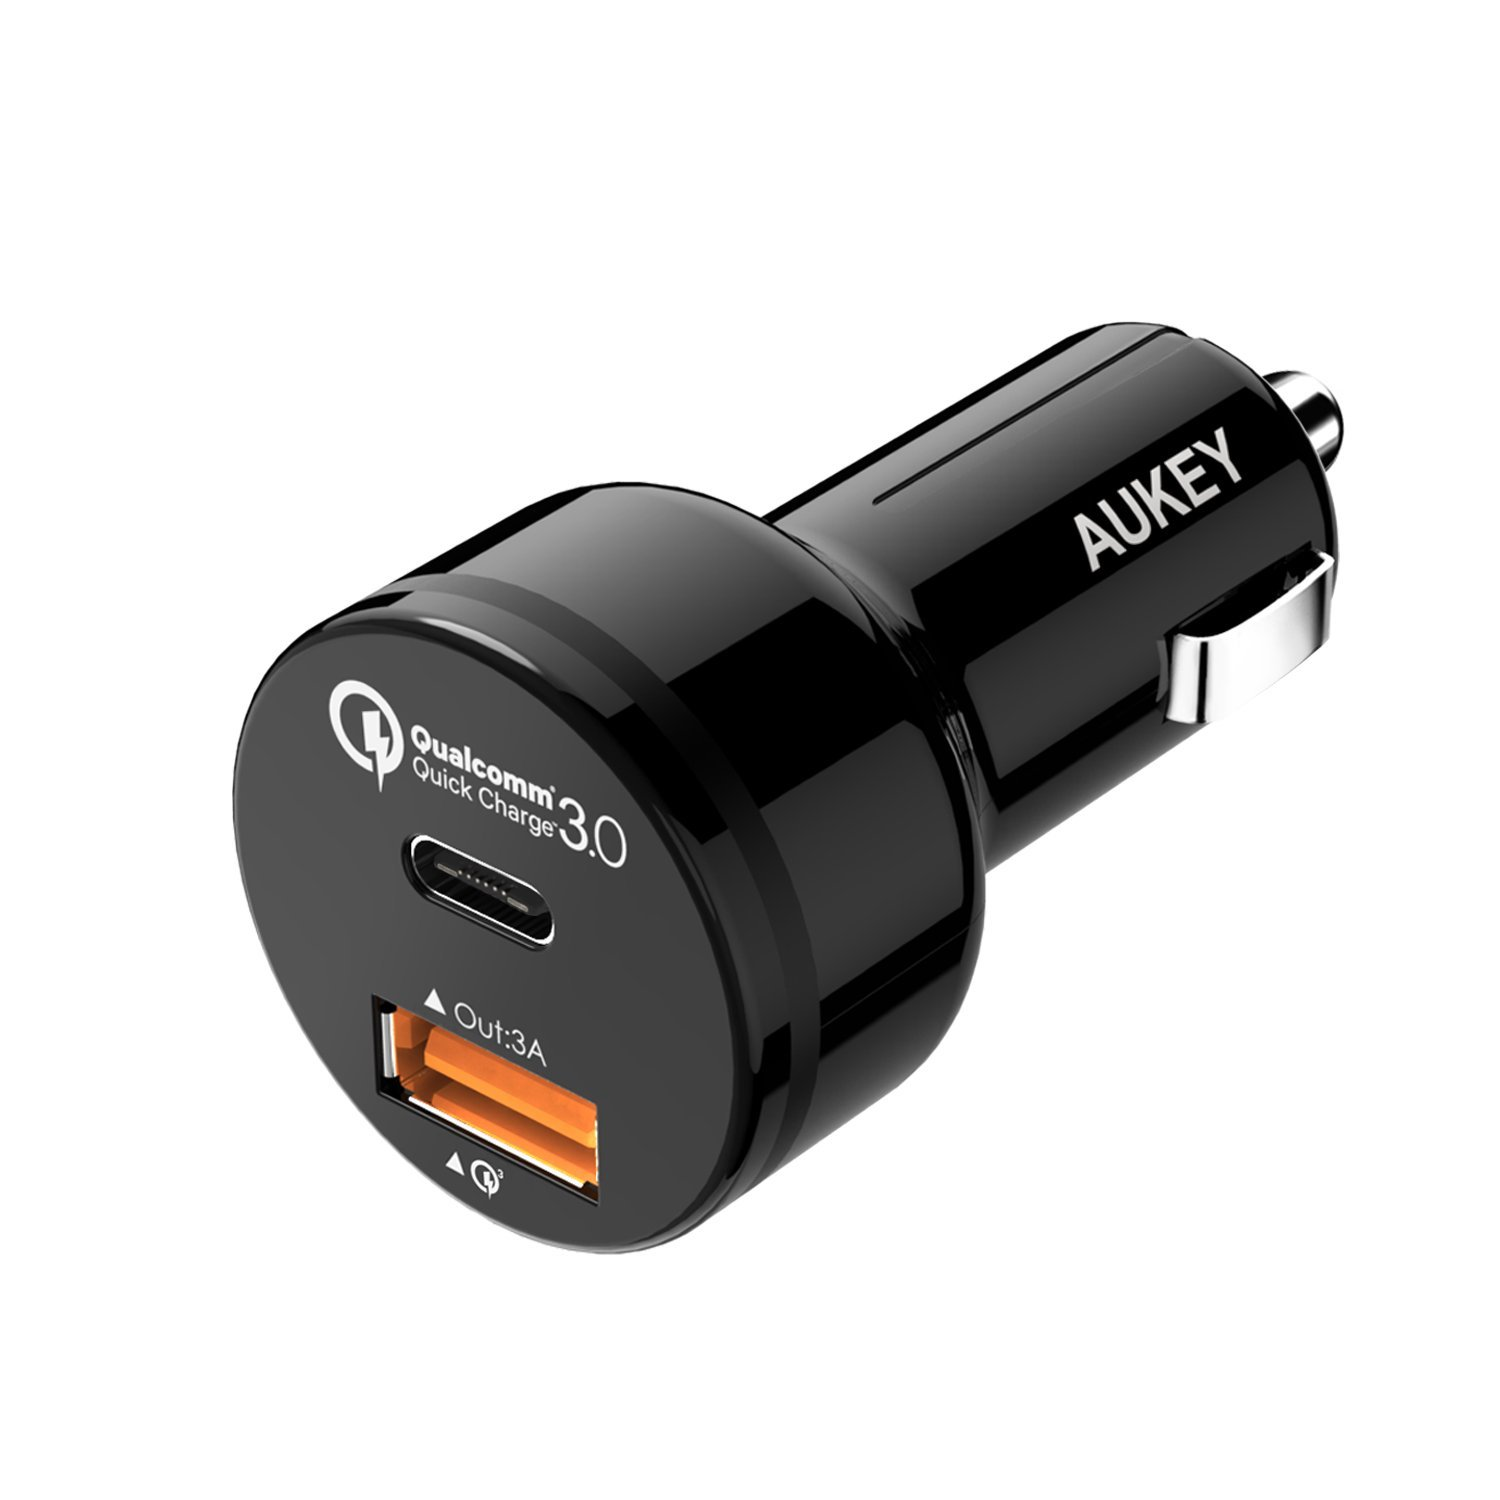 aukey-car-charger-1.jpg